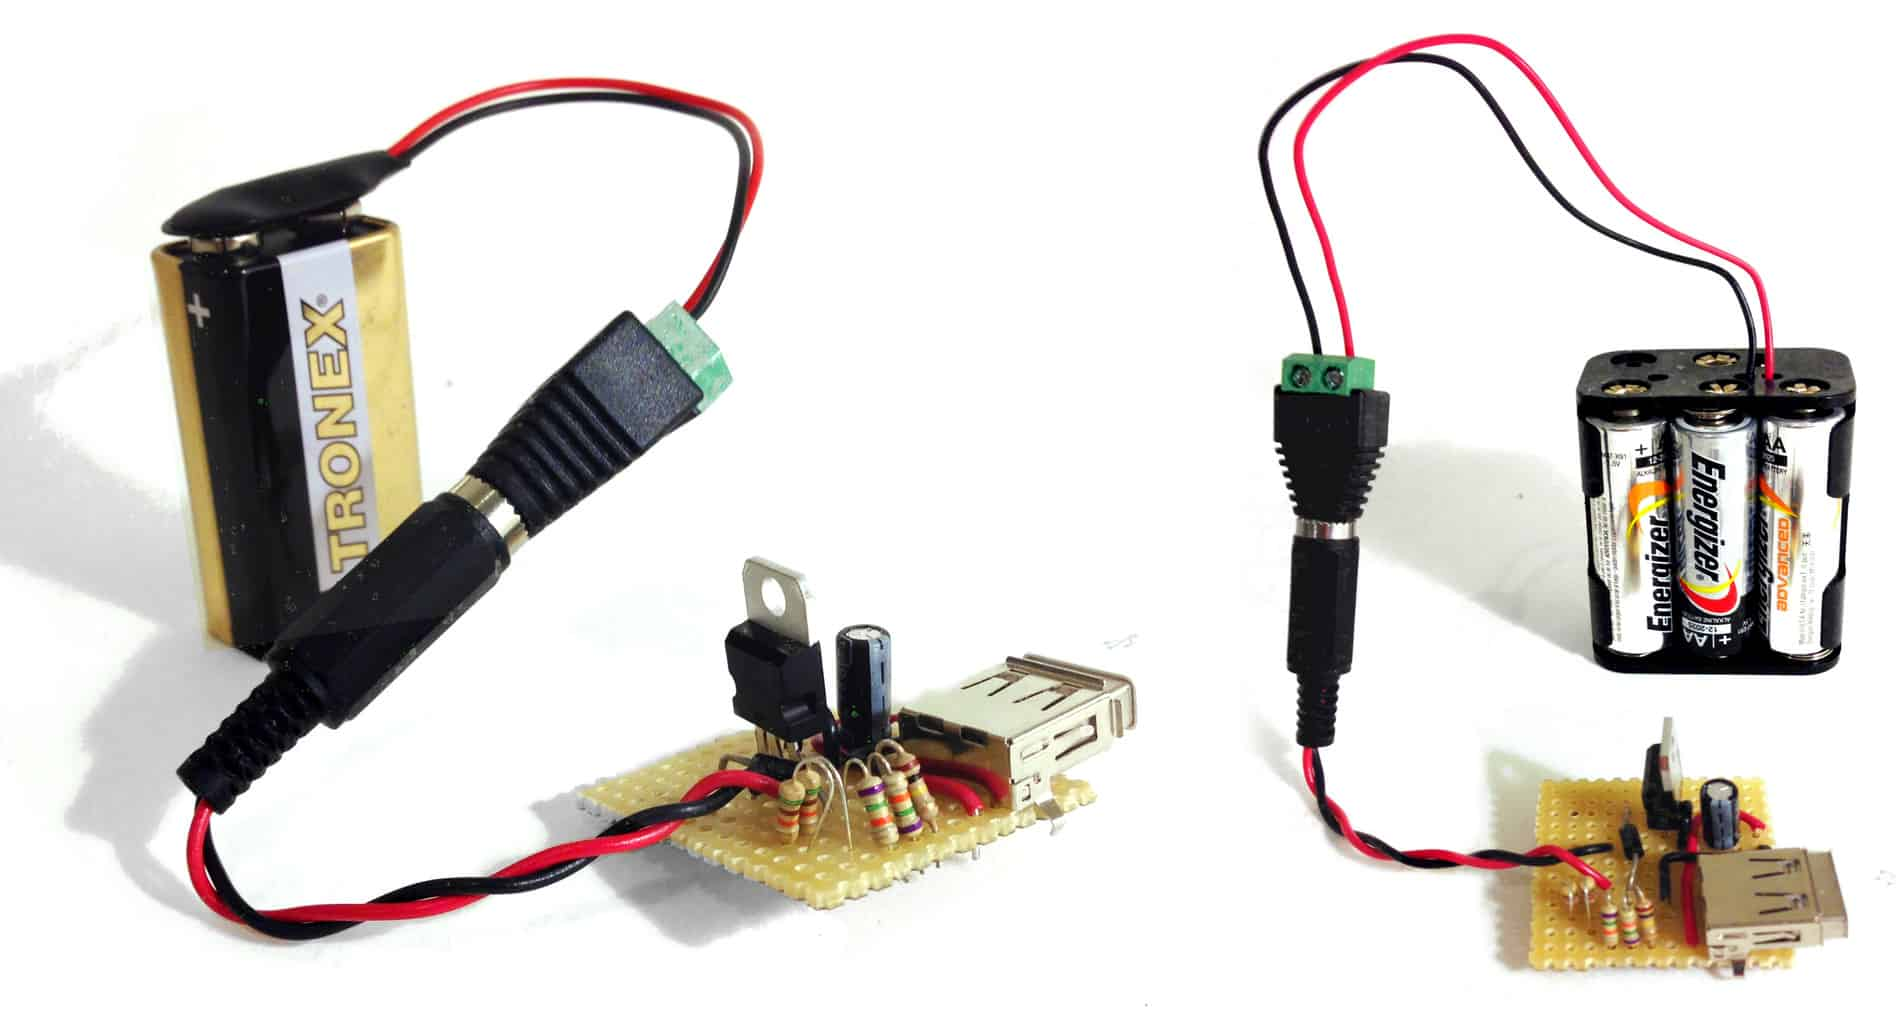 370861684201 in addition 47962 moreover Security Alarm Window Sensor Wiring Diagram as well Usb Battery Charger Spec also 12 Bayslot Aa Aaa Ni Mh Ni Cd Lcd Fast Charger Smart Battery Charger For Rechargeable Batteries By Sunlabz. on aaa solar battery charger circuit